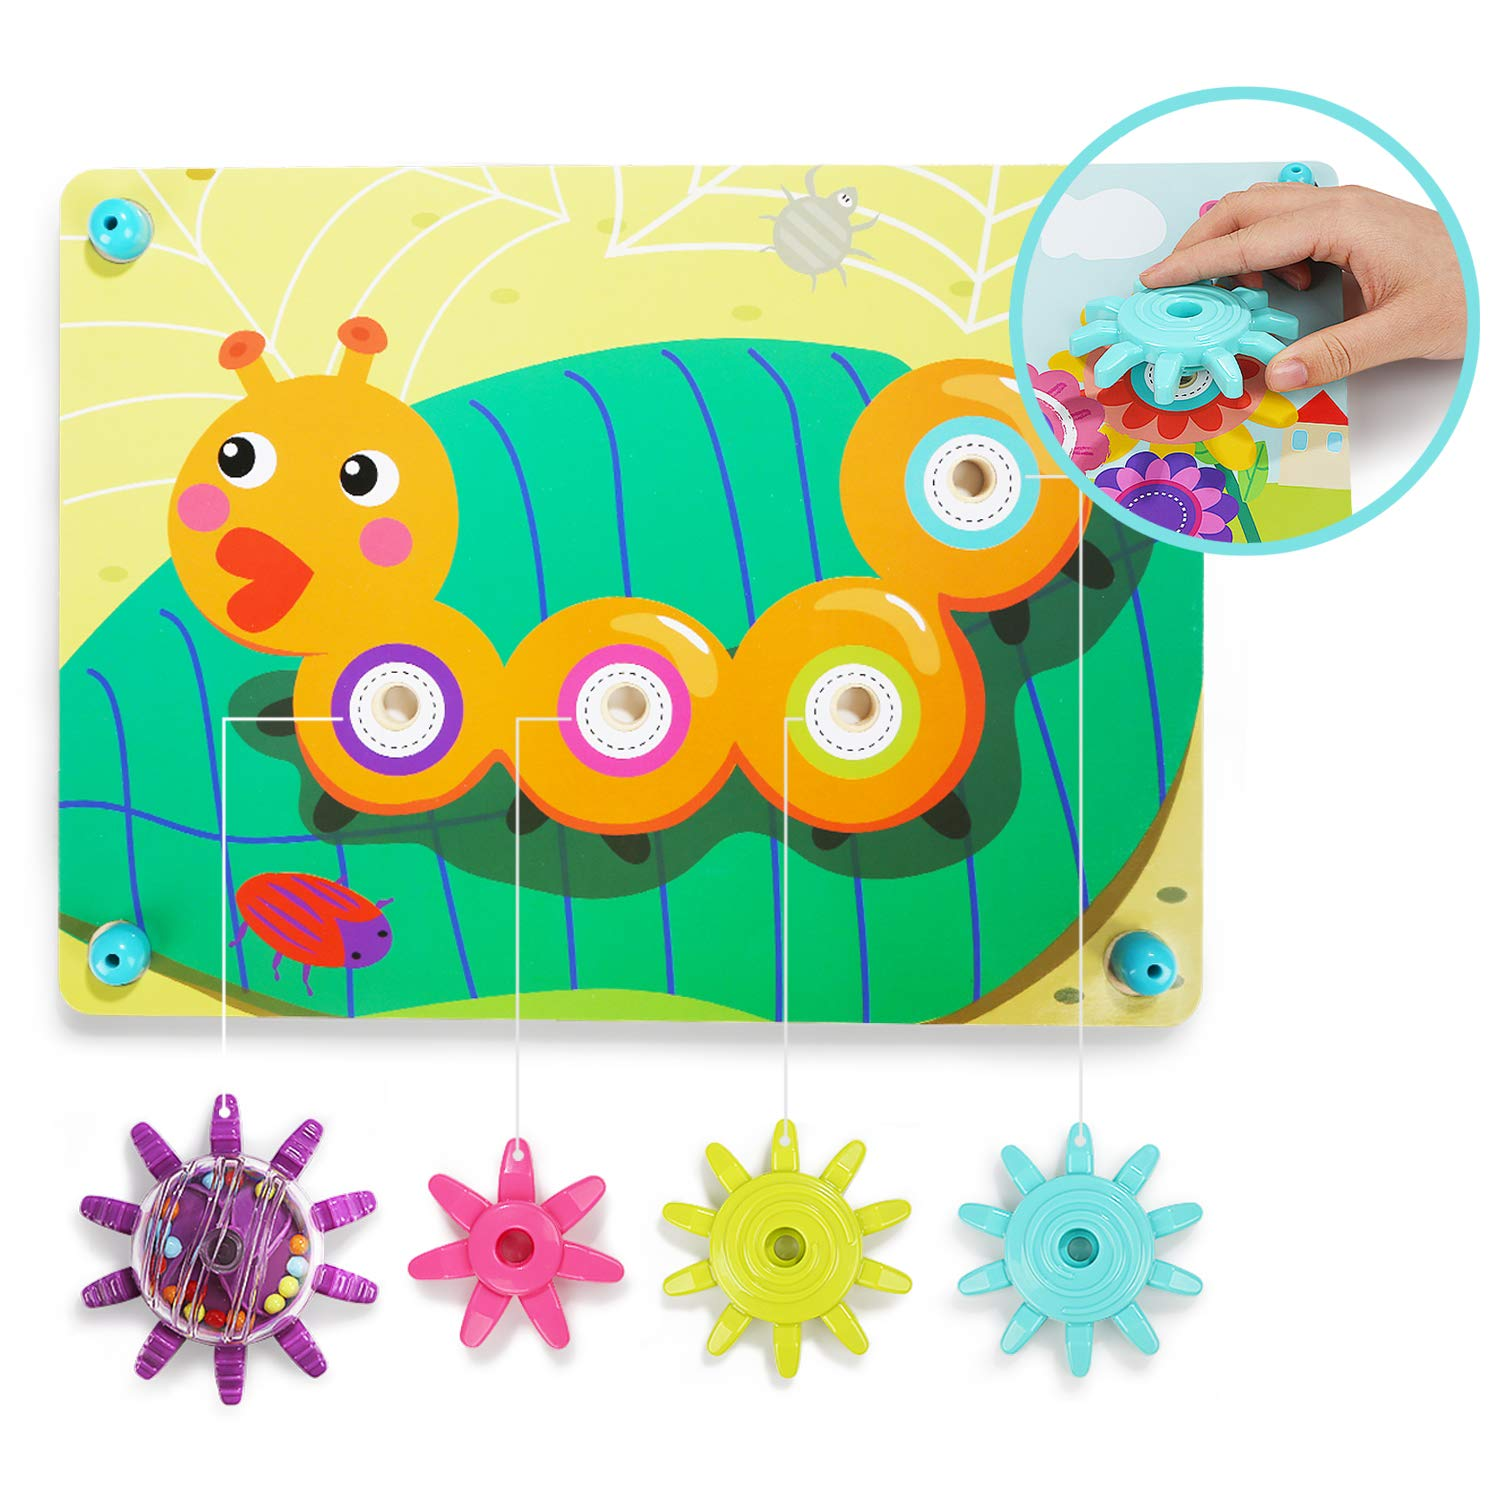 TOP BRIGHT Gear Toys for Toddlers - Stem Early Learning ...